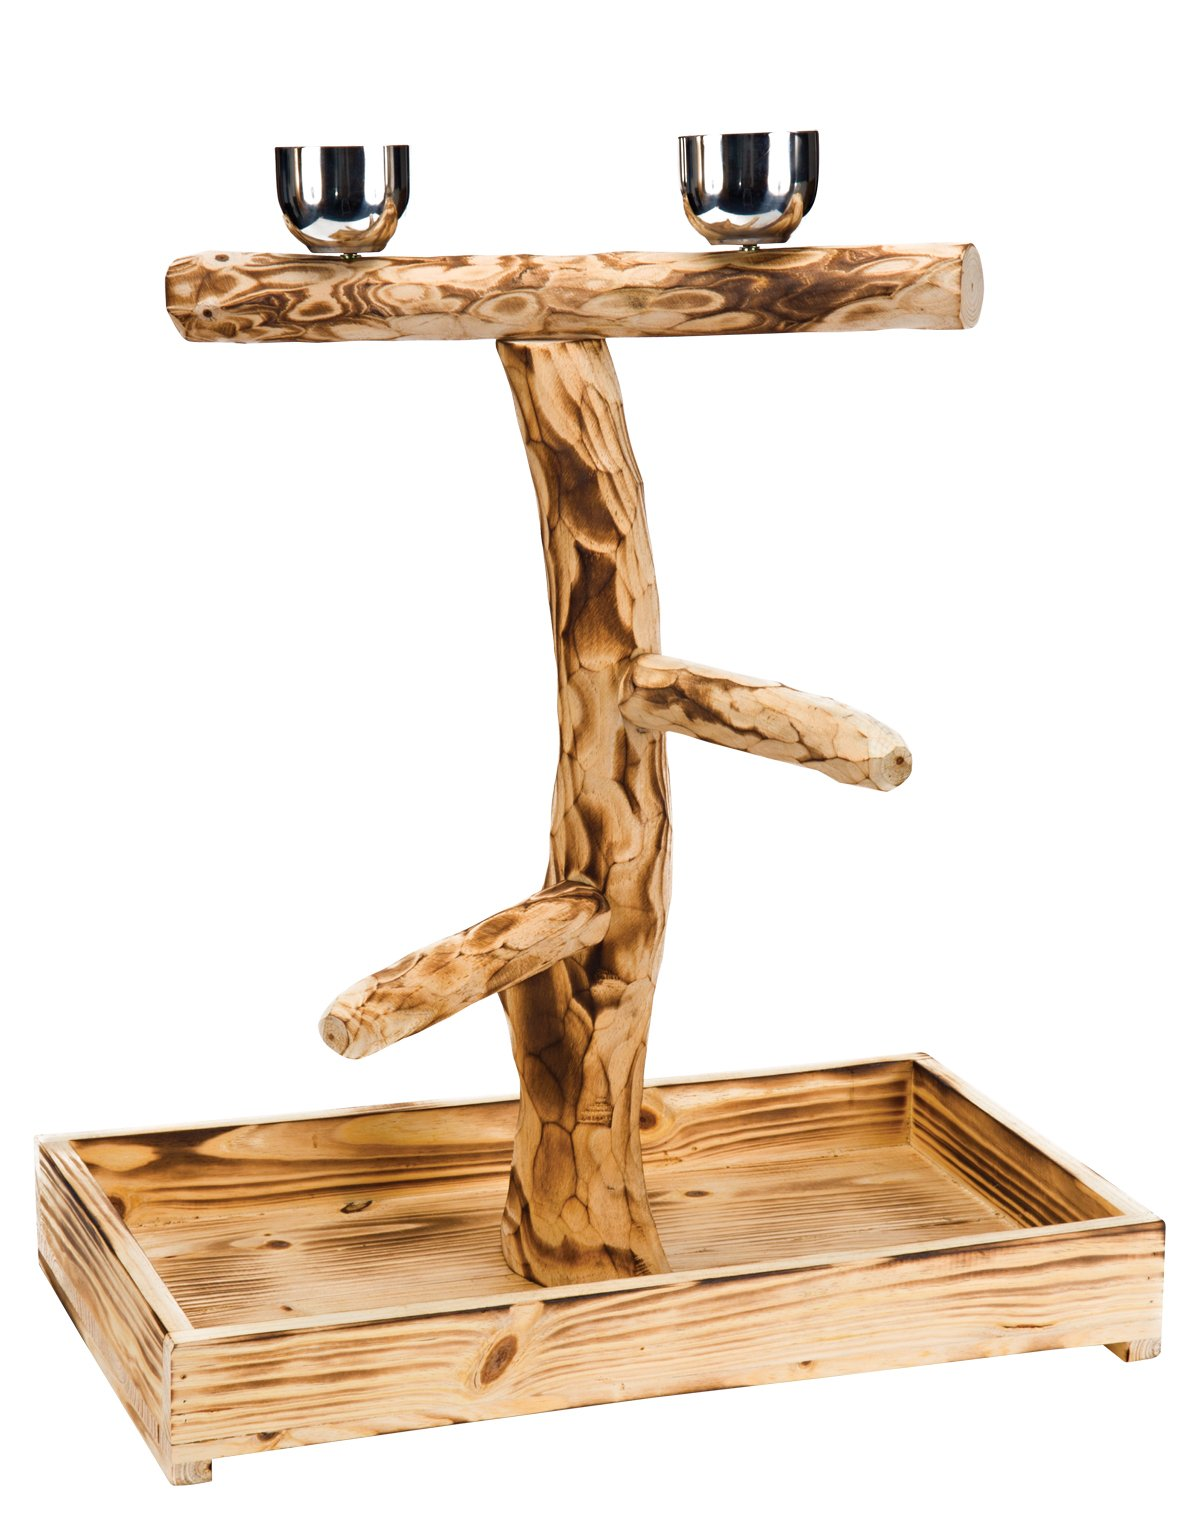 Penn Plax Wood Bird Perch with 2 Stainless Steel Feeding Cups and Drop Tray for Large Birds - 19 Inch Height by Penn Plax